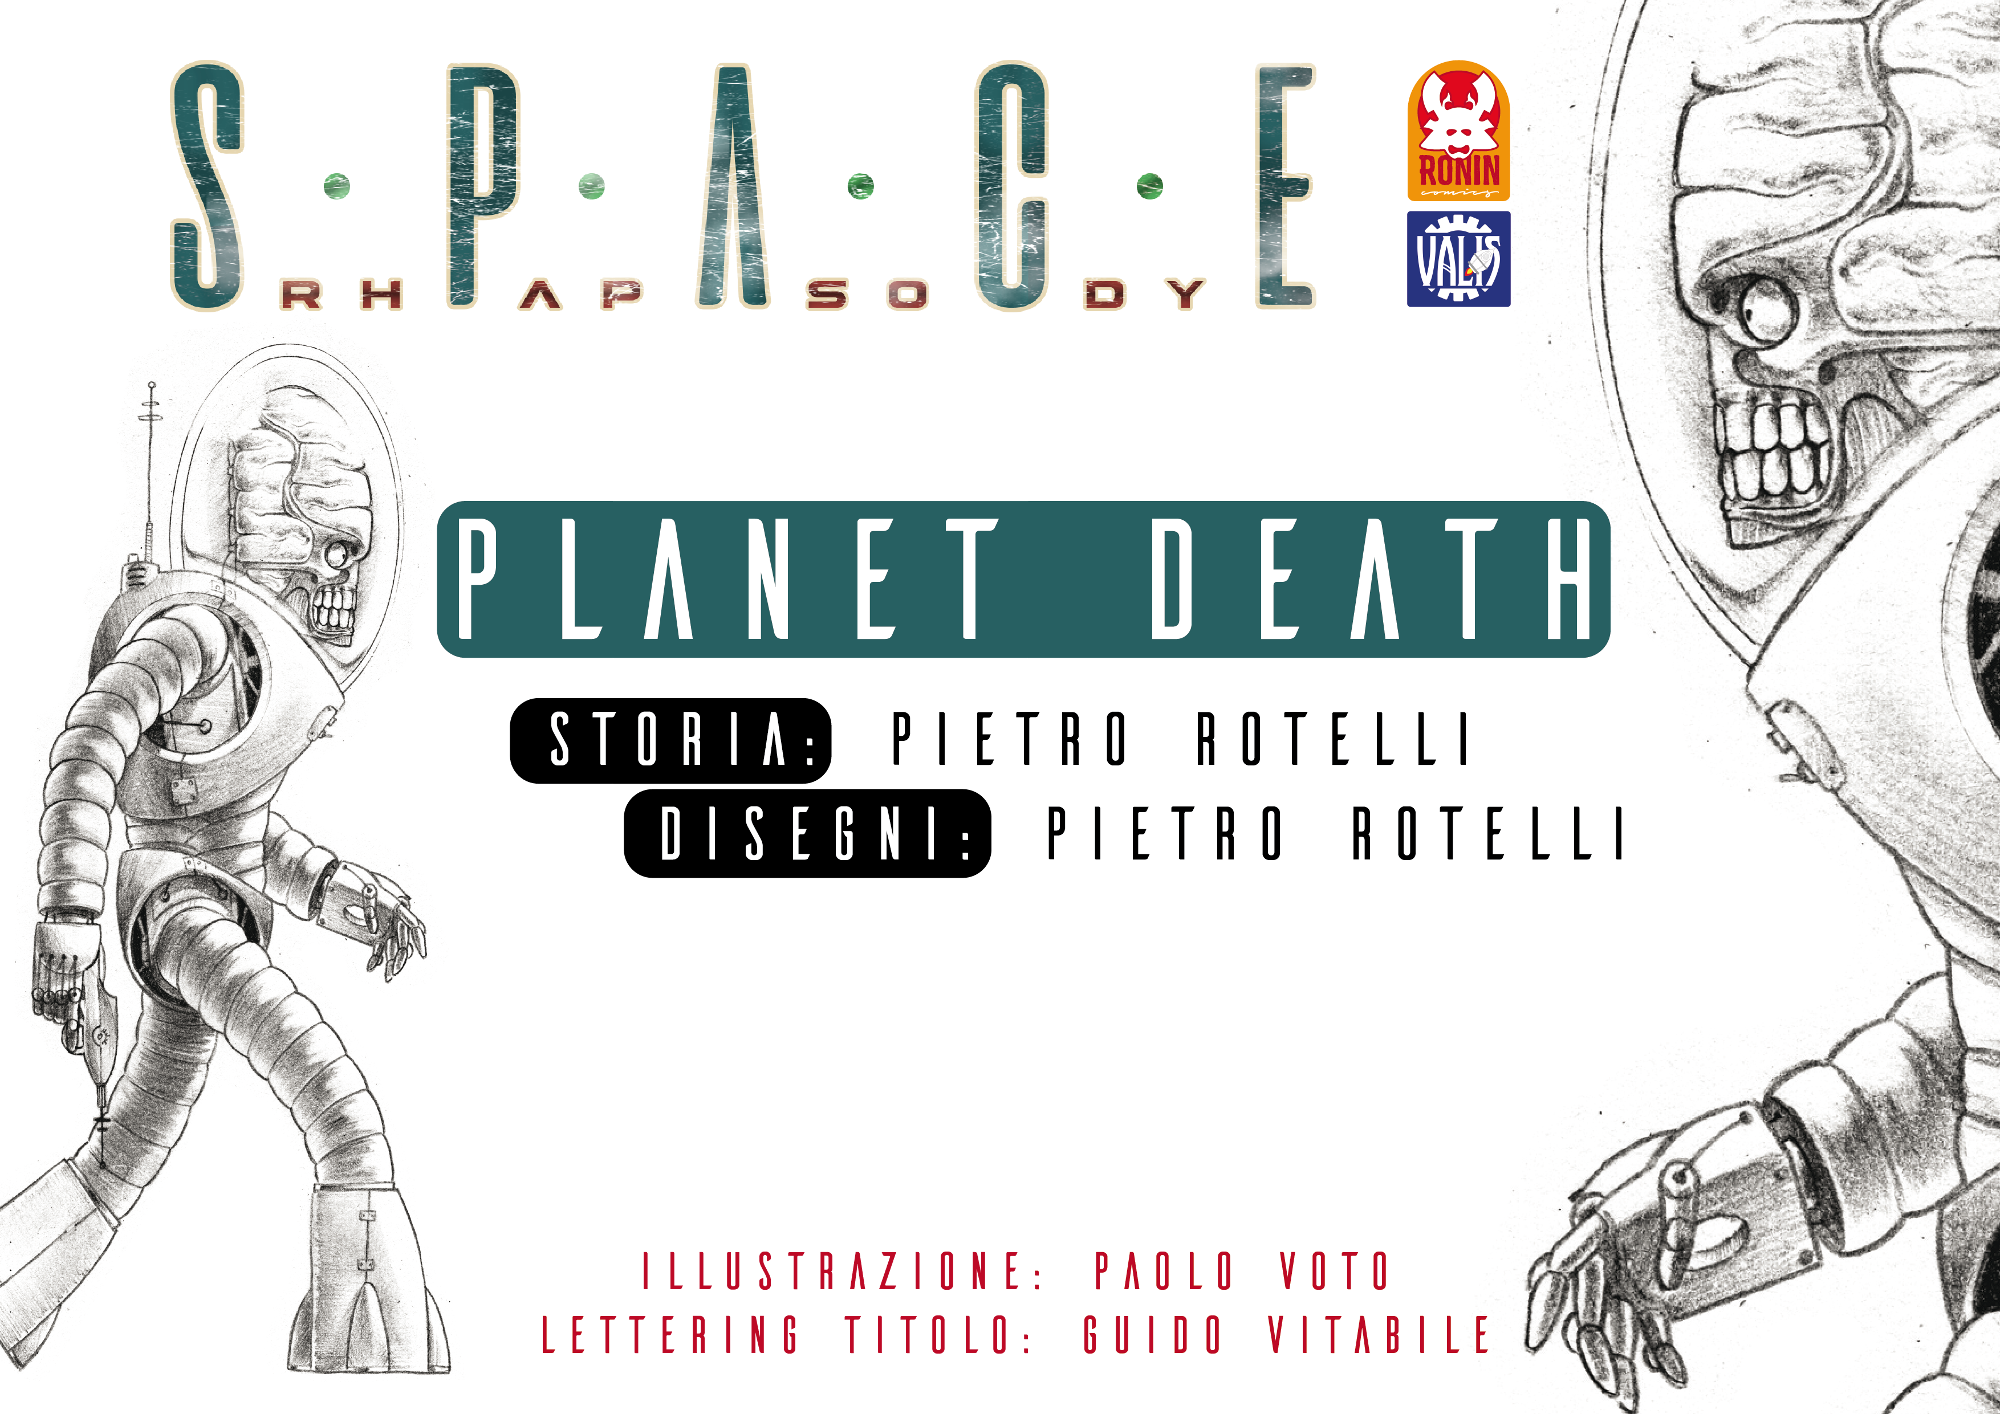 Space Rhapsody #4 - Planet Death 3 - fanzine